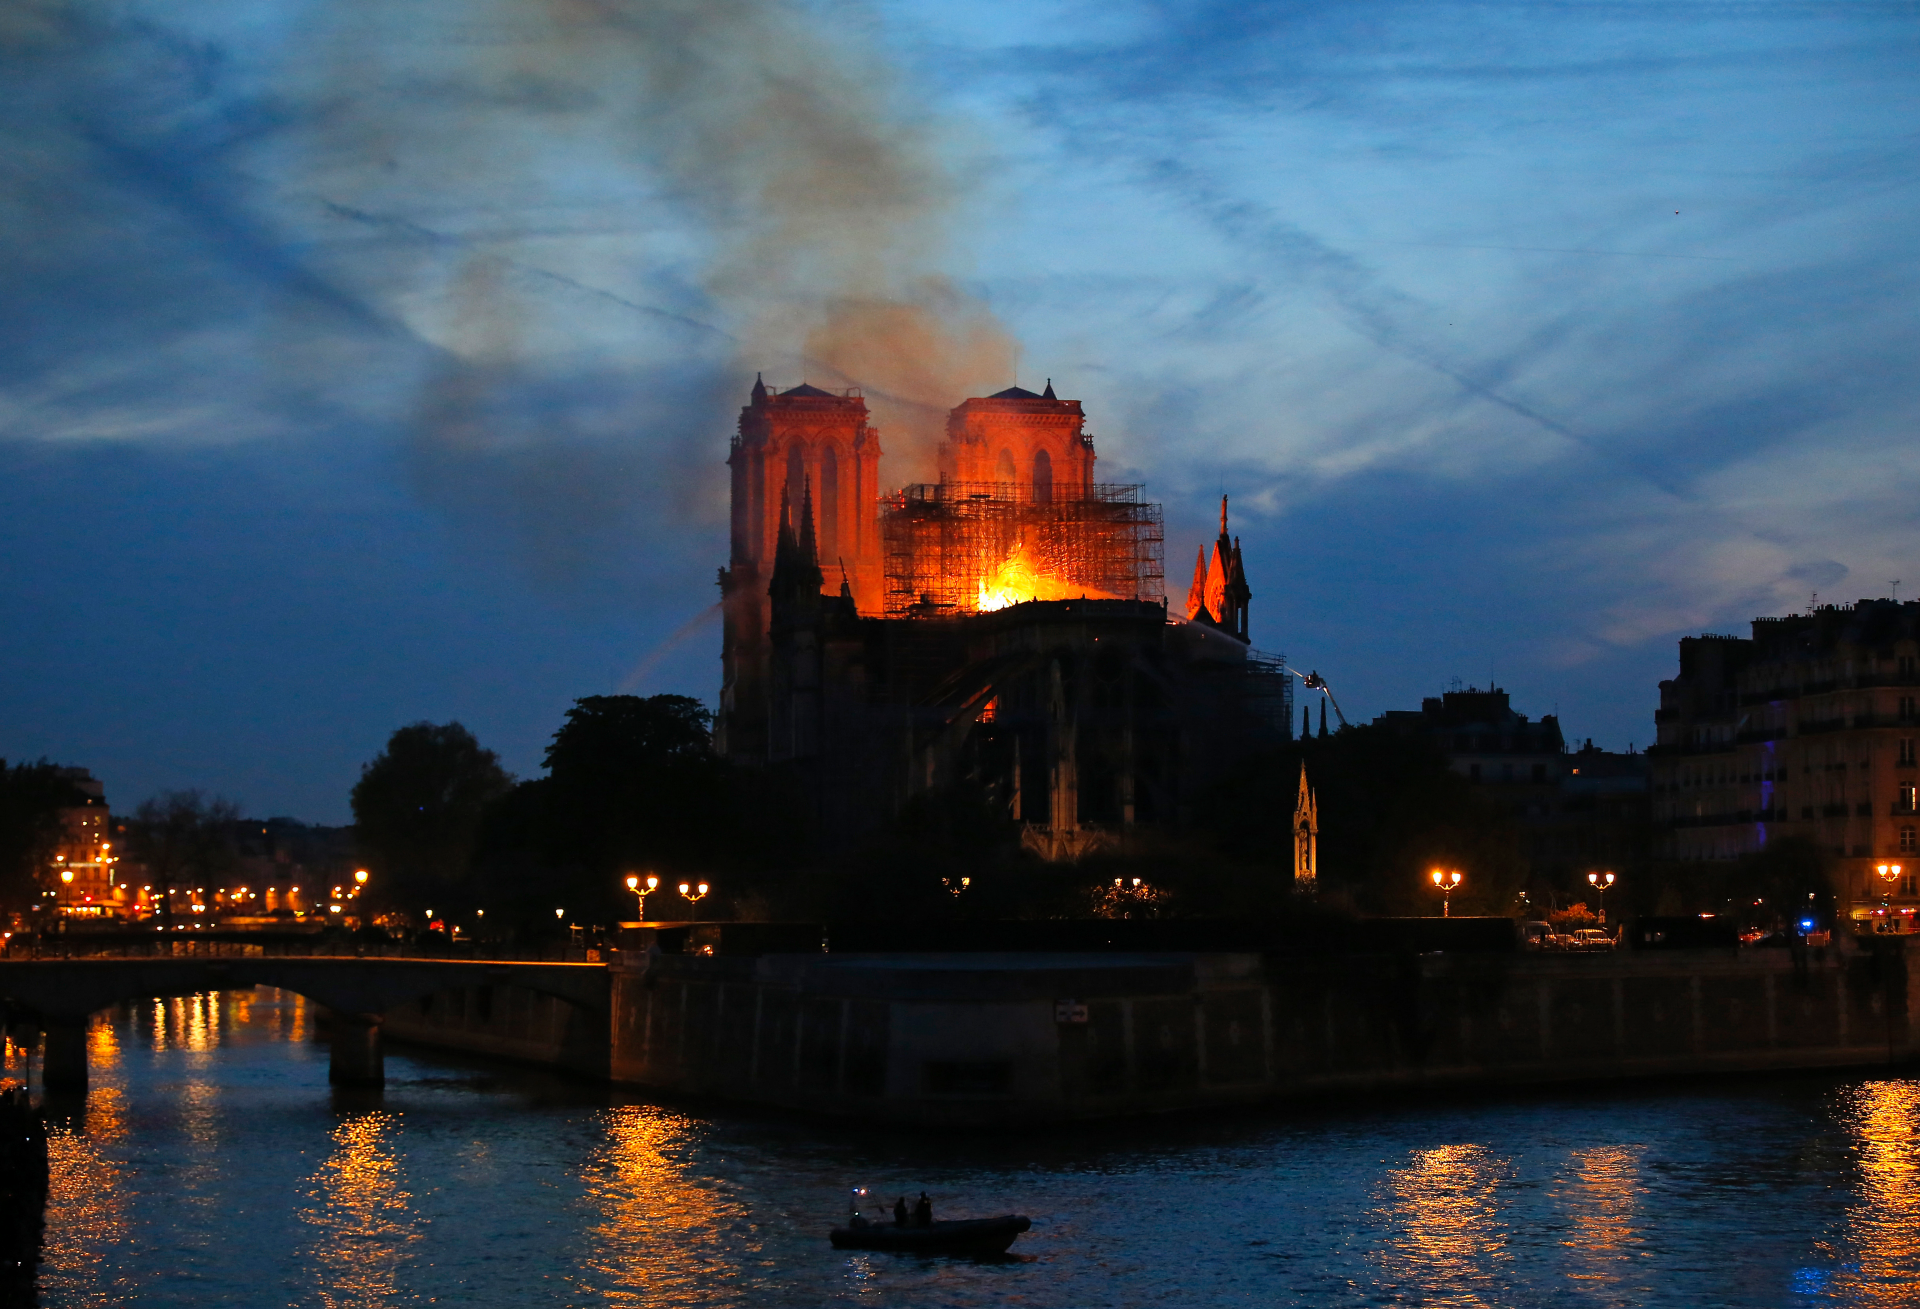 Westlake Legal Group ContentBroker_contentid-0c5c37c65abf4b5aa5441af0e7b9ed38 The Latest: French leader vows to rebuild damaged Notre Dame Paris fox-news/world/world-regions/europe fox-news/world/religion fox-news/world fnc/world fnc Associated Press article 828caf79-9ef2-59c4-83ec-53c97afc35f9